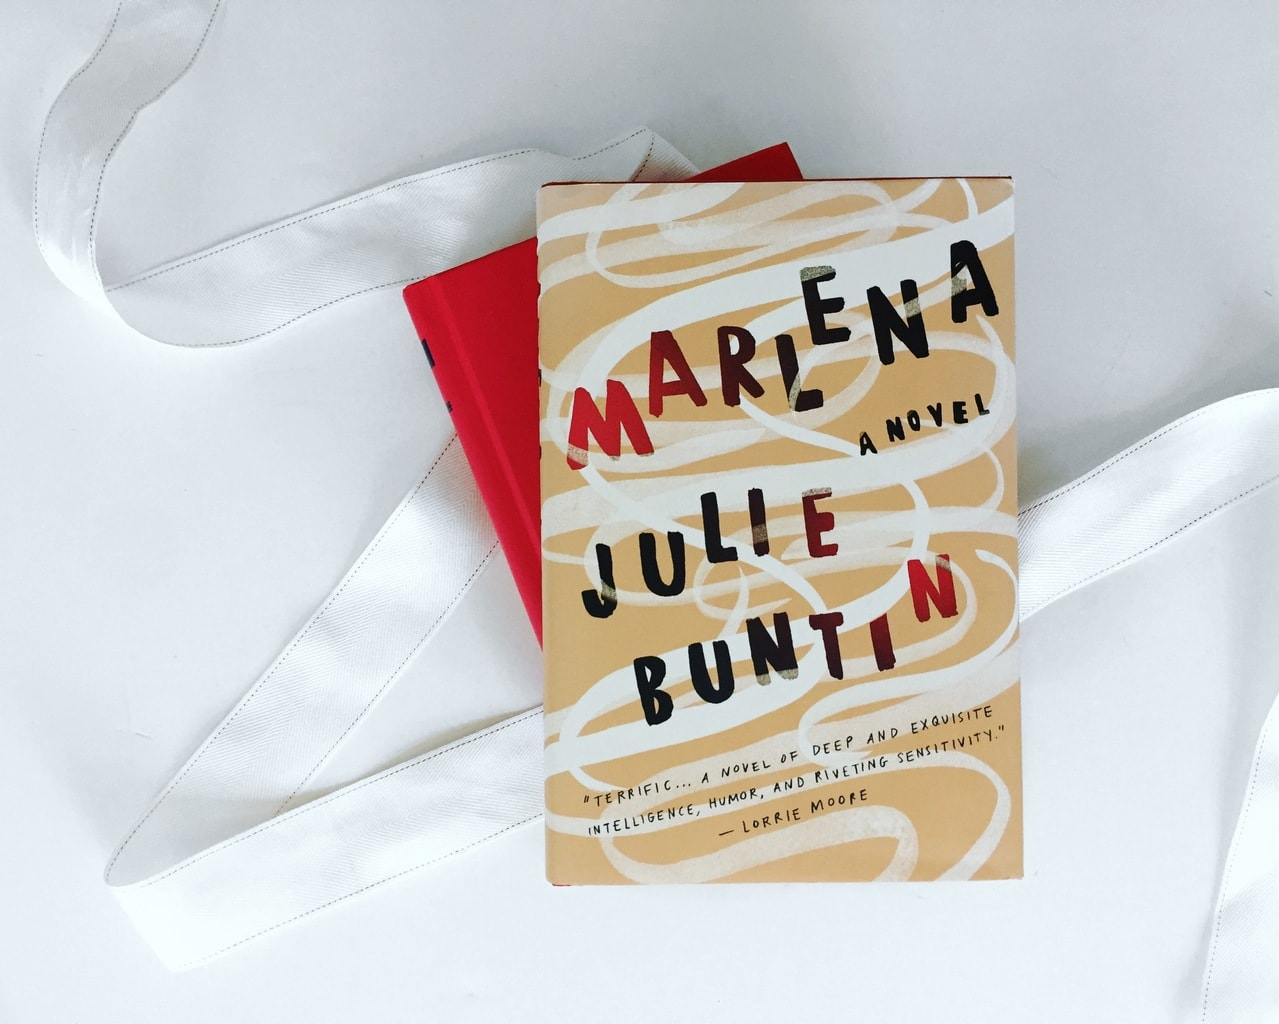 Marlena: A Good Book That Made Me Feel Icky (And Conflicted)